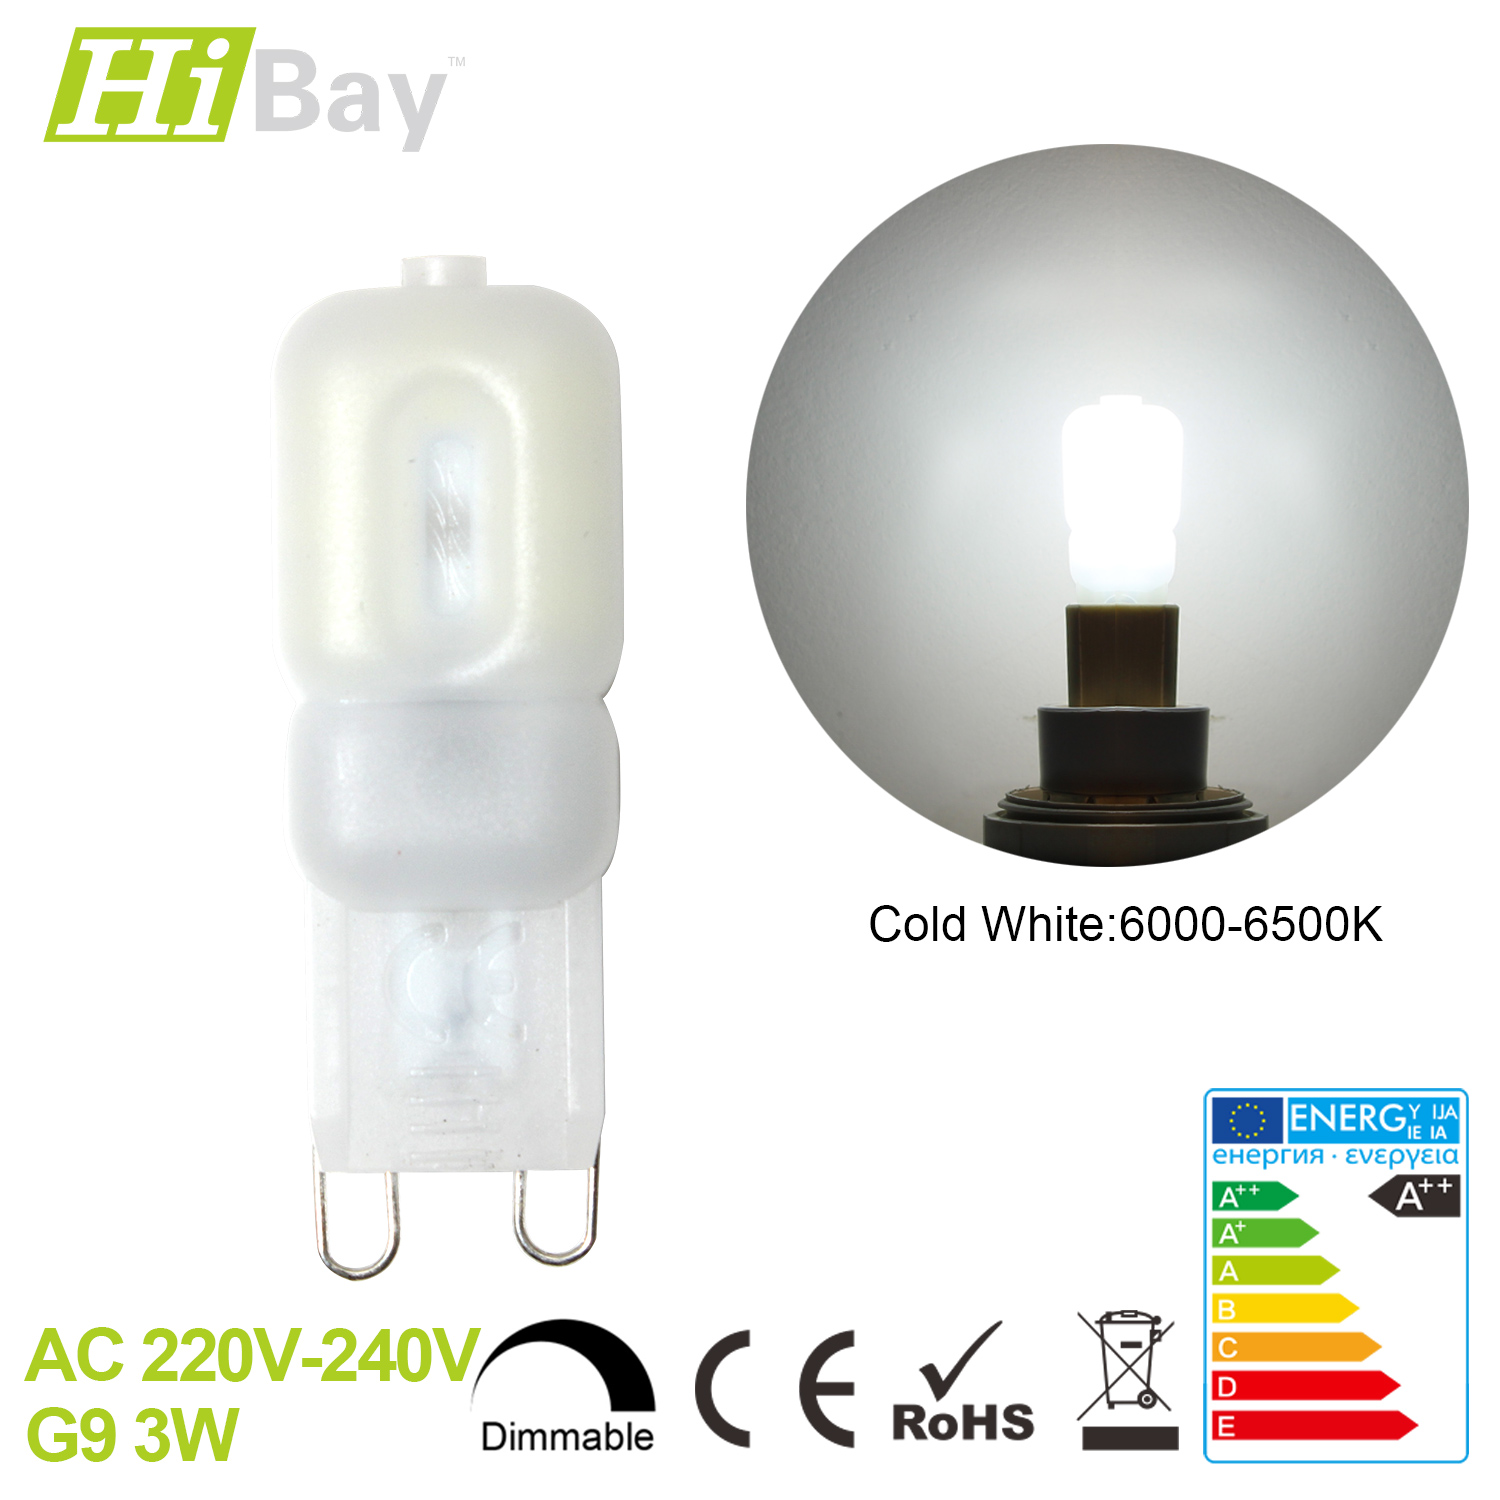 g9 3w 5w mini led light bulb capsule chandelier lamp. Black Bedroom Furniture Sets. Home Design Ideas